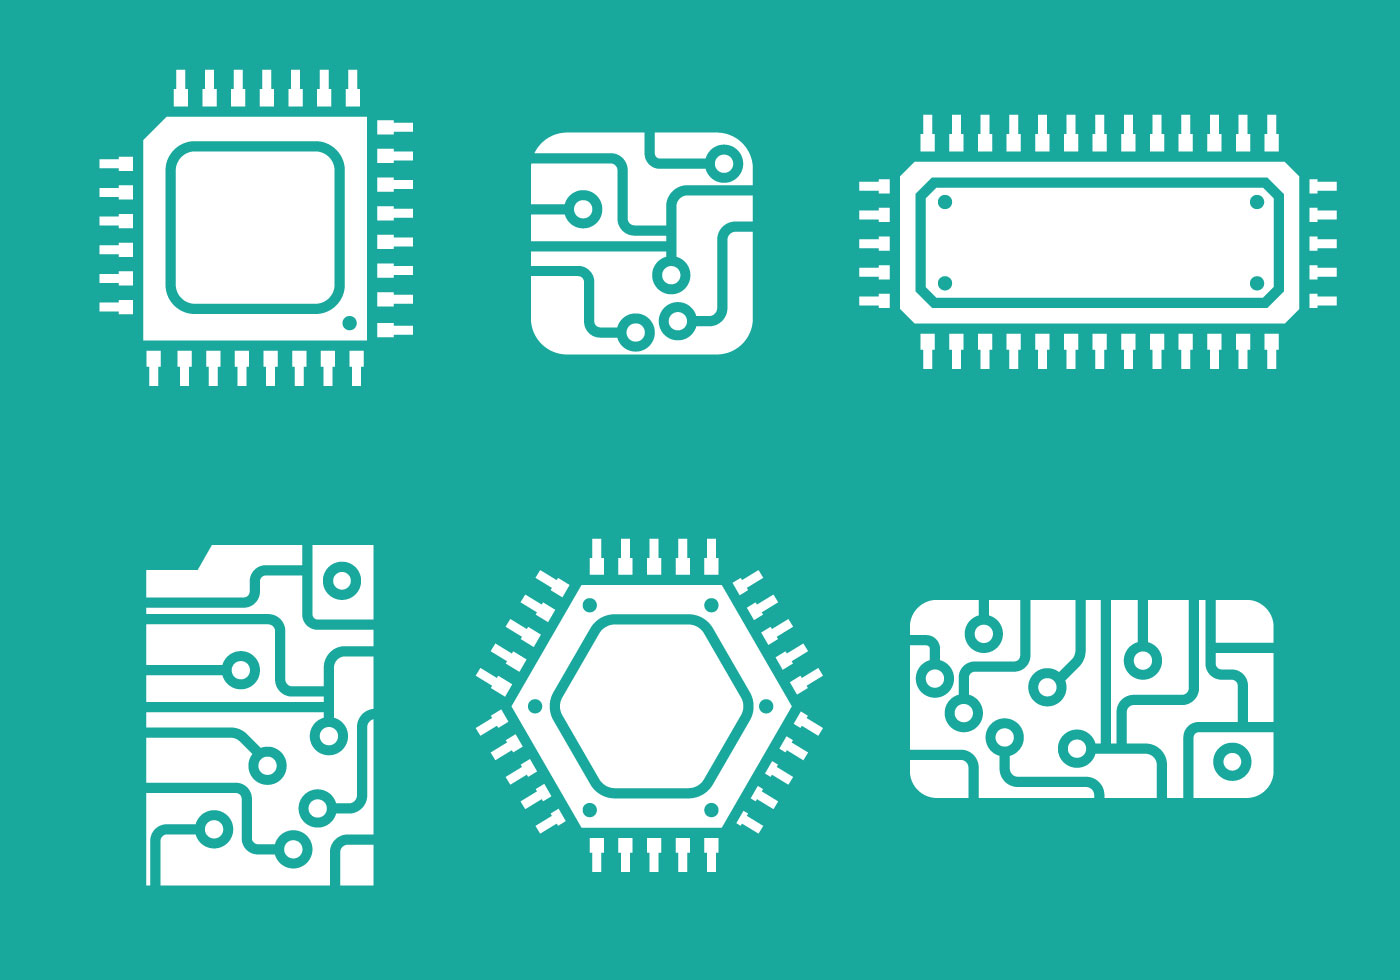 microchip Microchip technology distributor mouser electronics stocks microchip technology microcontrollers and analog products.